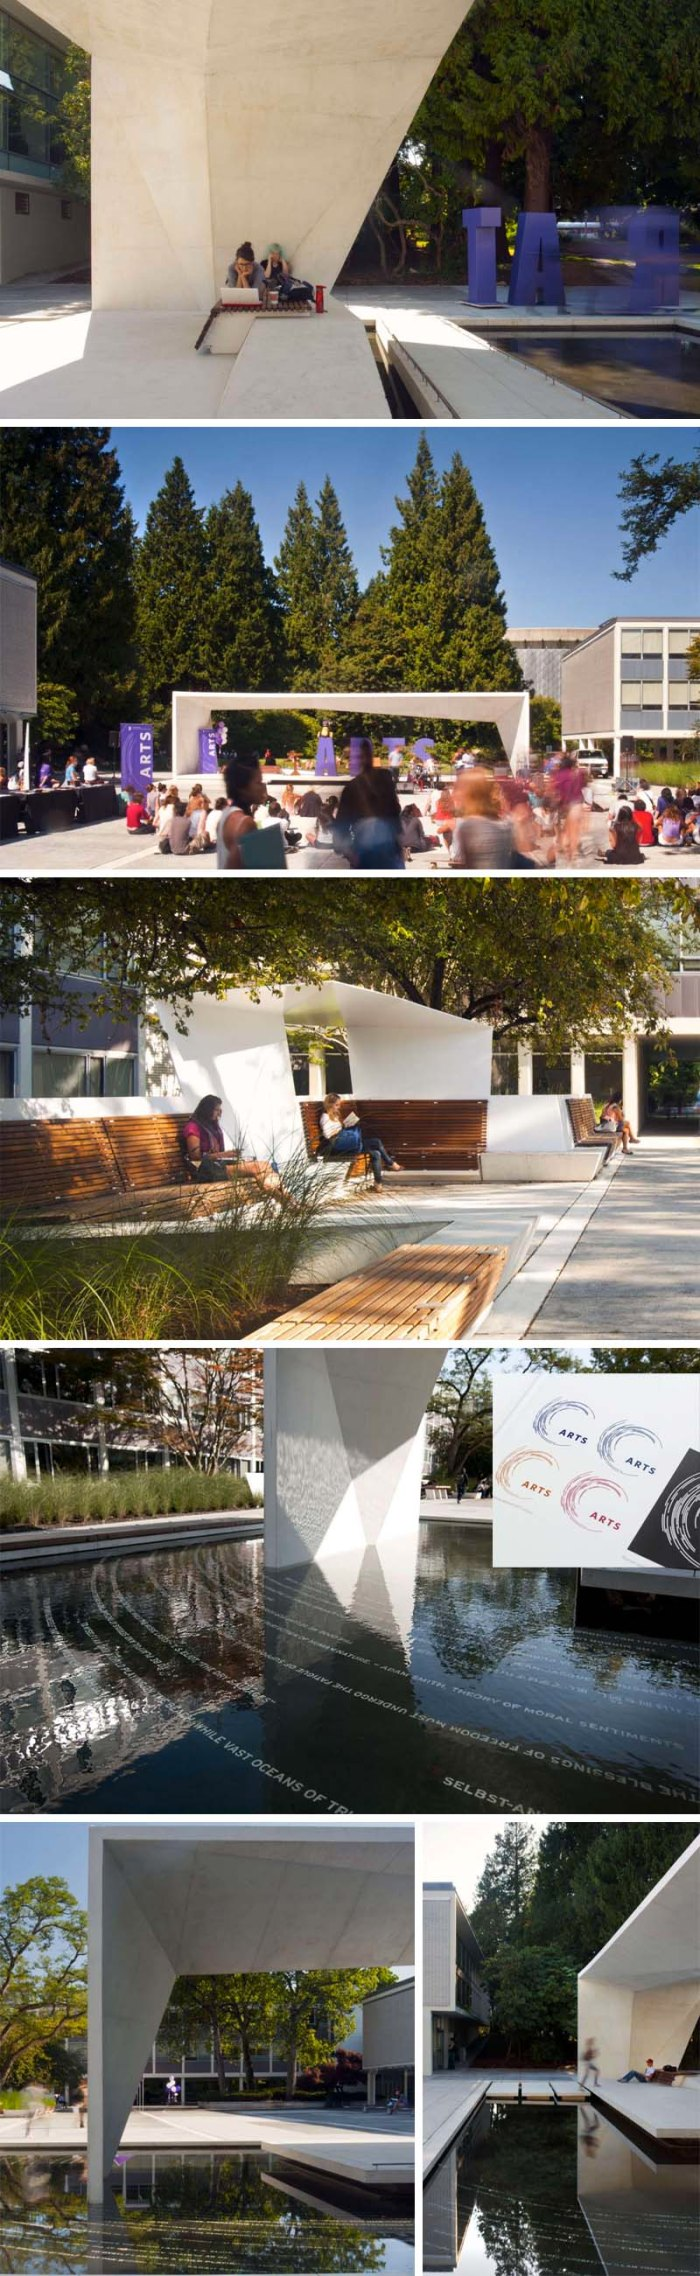 UBC Buchanan Courtyard Renewal by Public Design in Vancouver, British Columbia. Cool seating and plaza area, with type circles in fountain emulating logo.